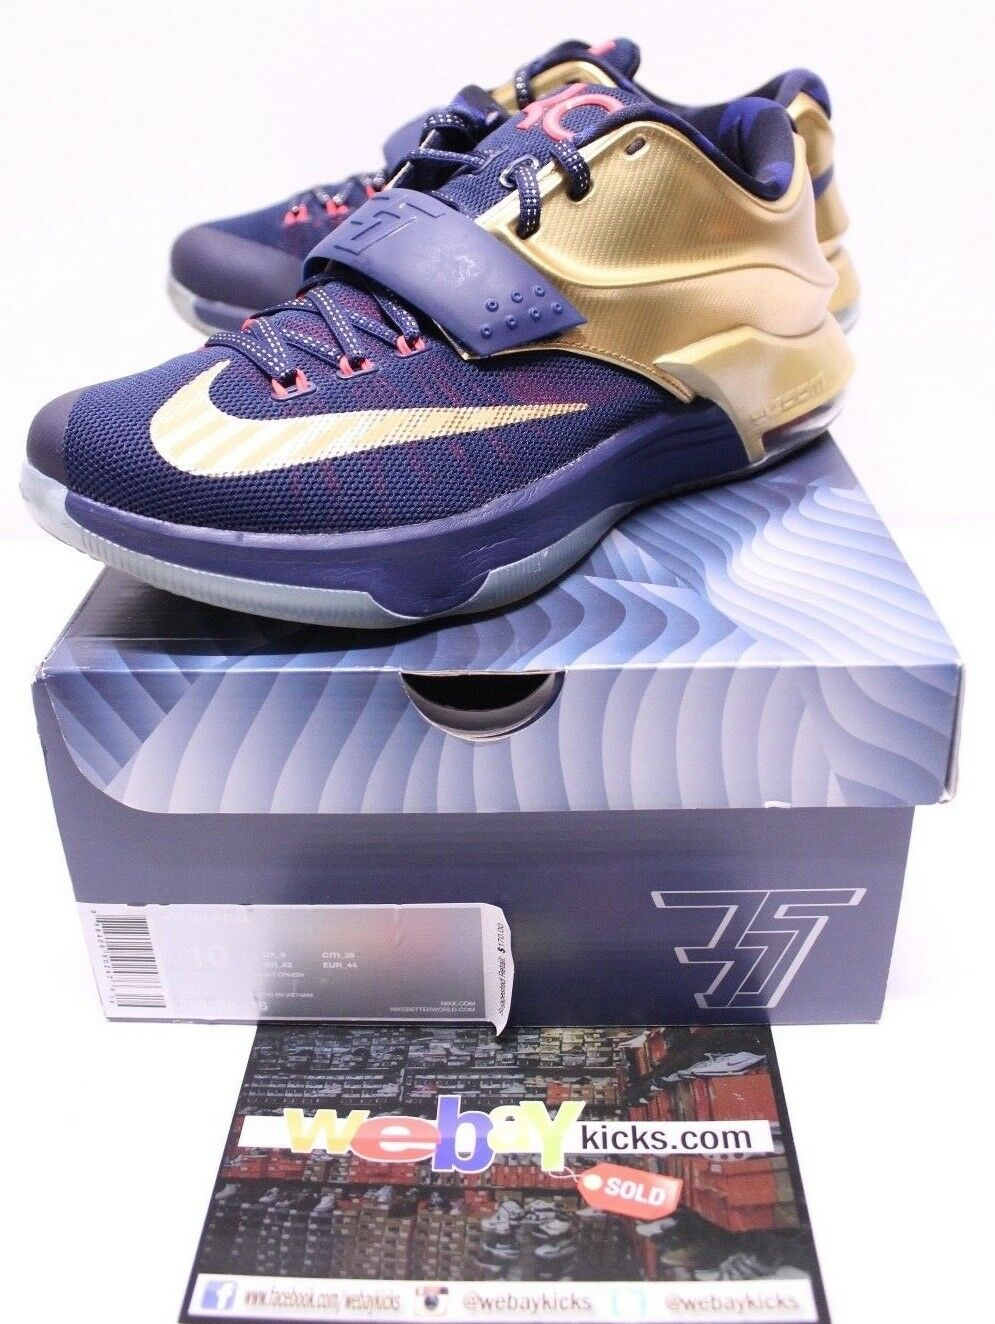 Nike Air KD 7 VI gold Medals Durant Navy bluee Red Sneakers Men's Size 10 Used